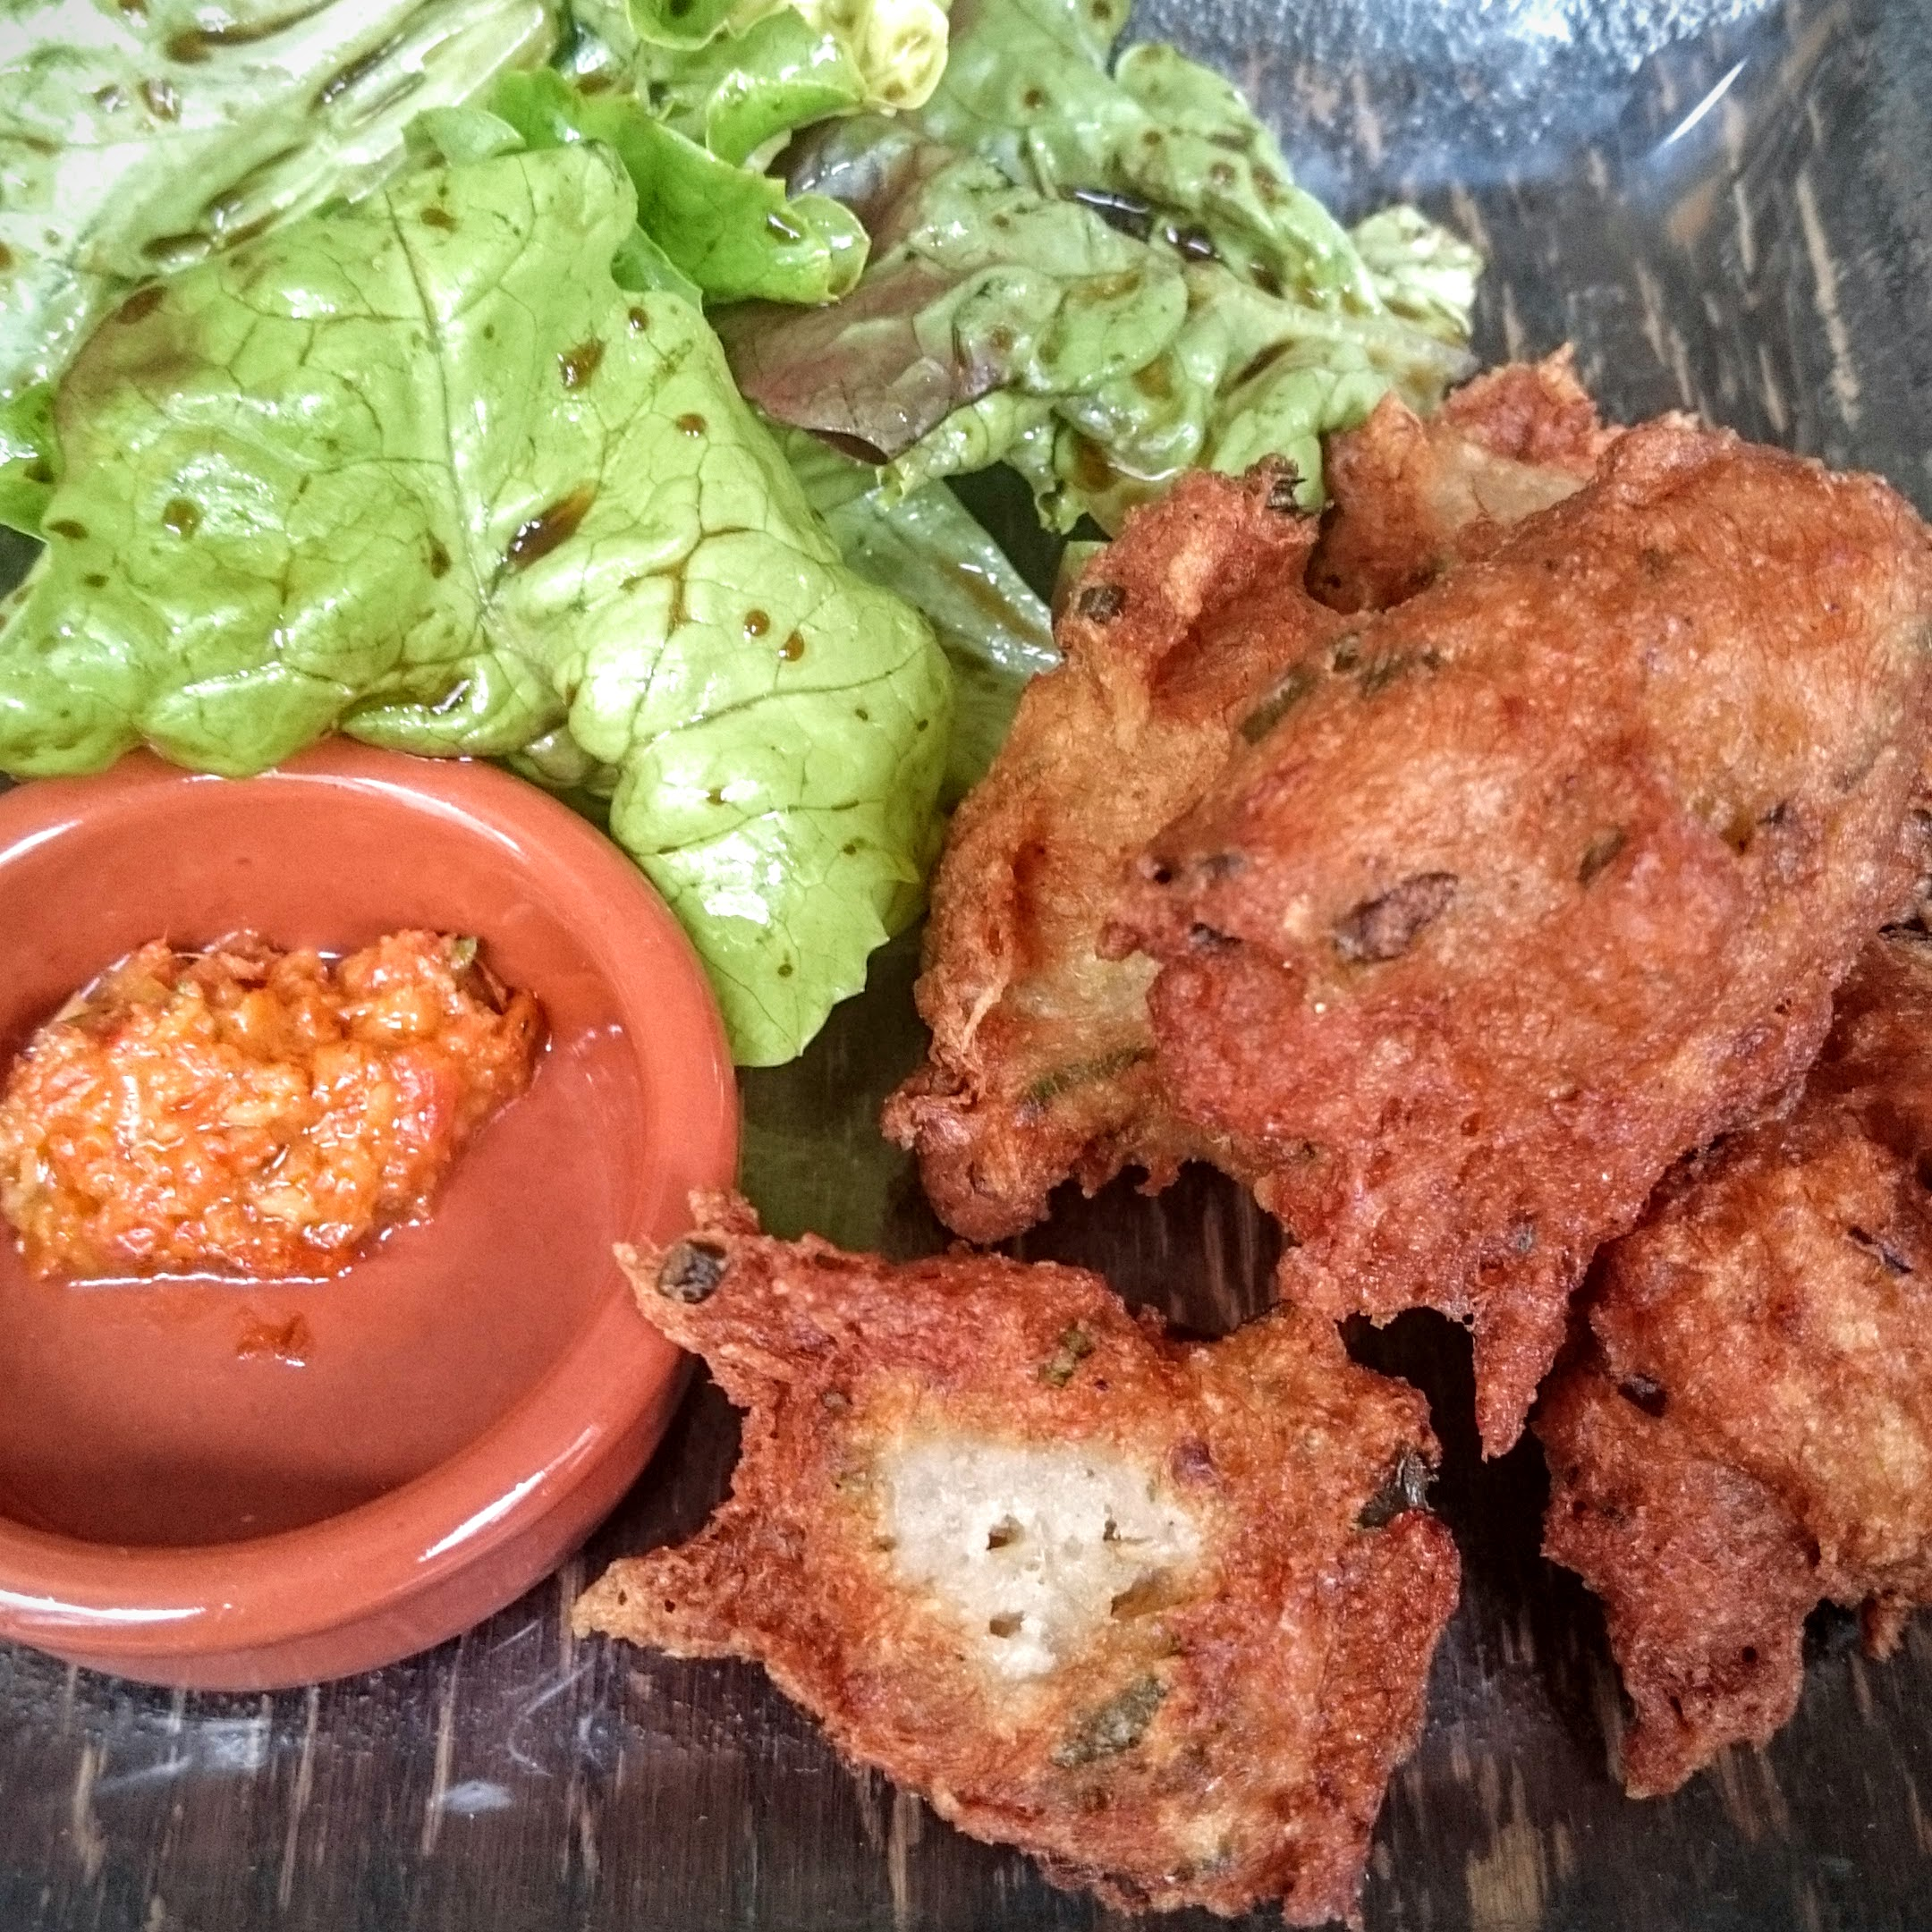 Salted cod fritters (from a previous visit)